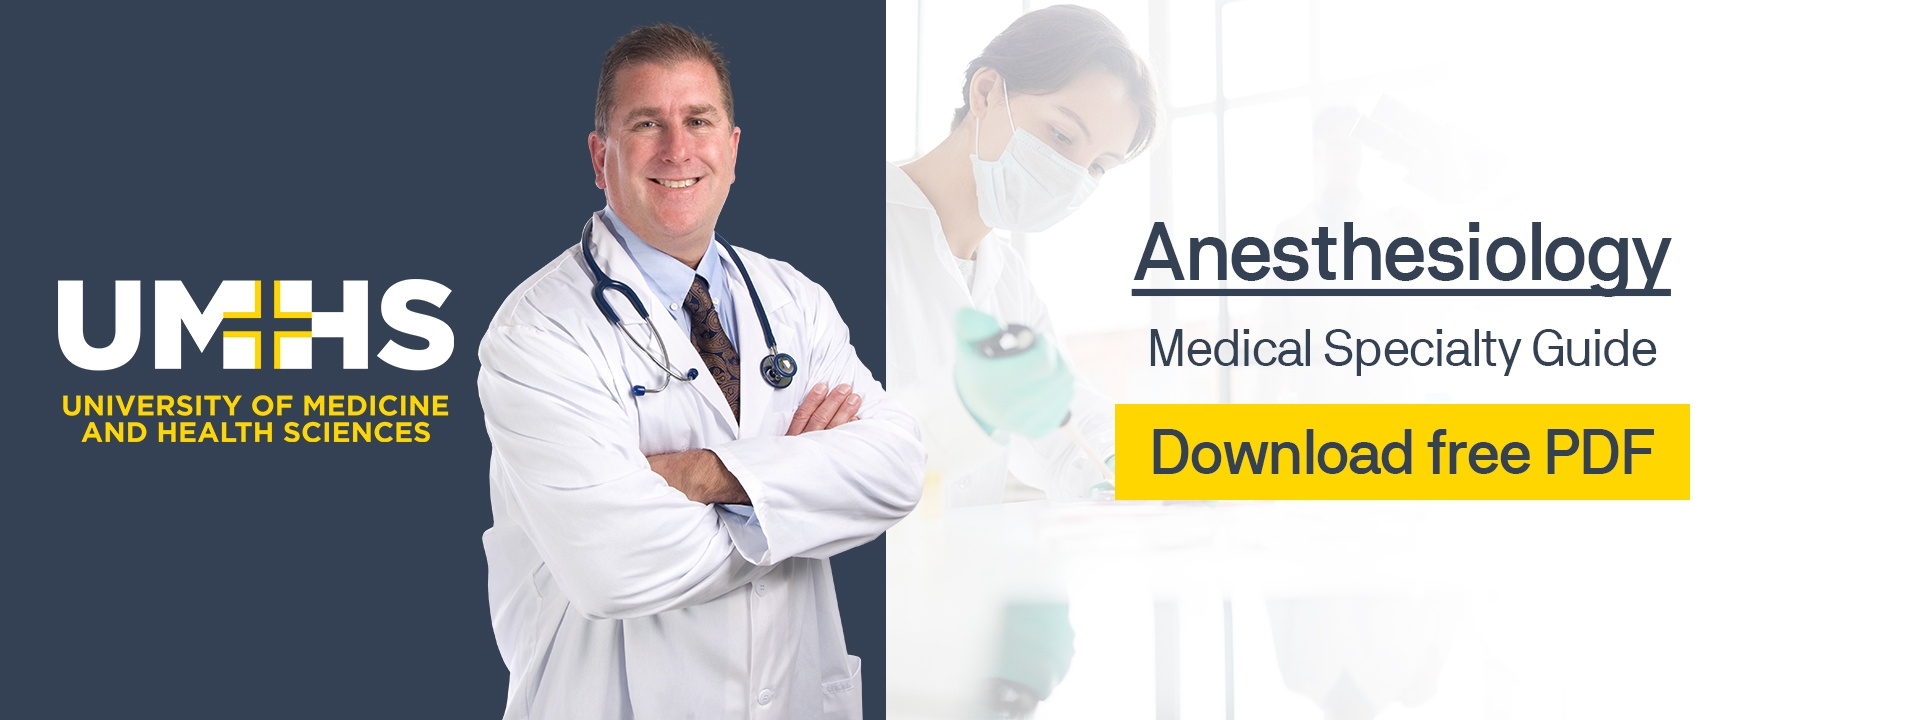 Anesthesiology Medical Specialty Guide